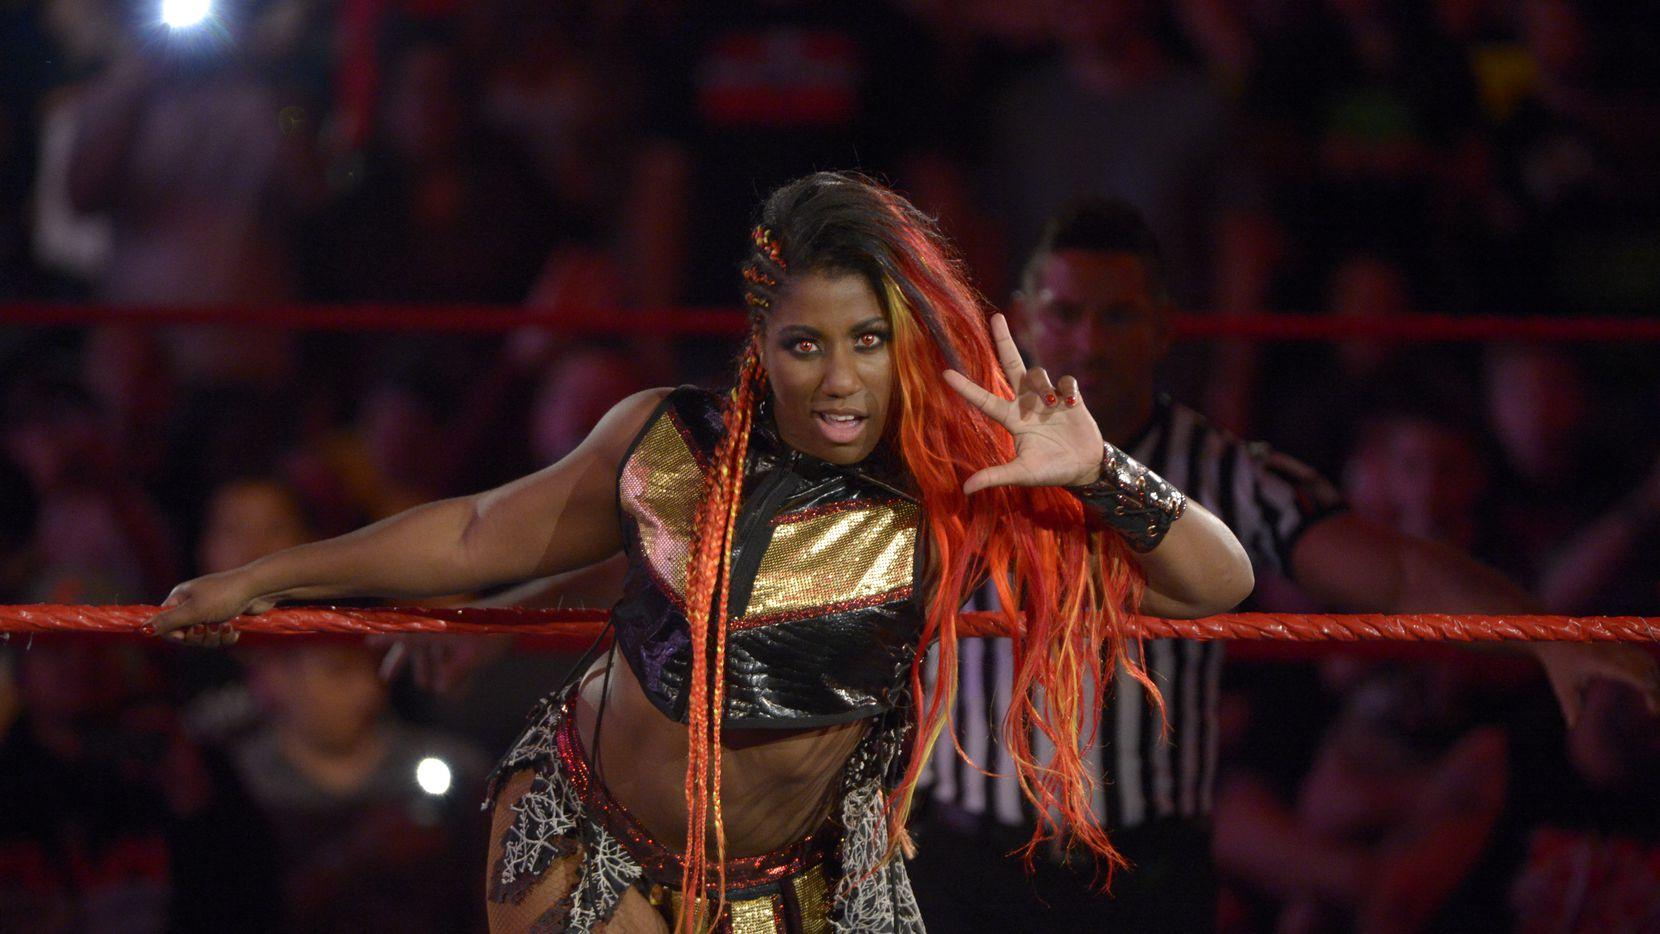 Image result for ember moon wwe""